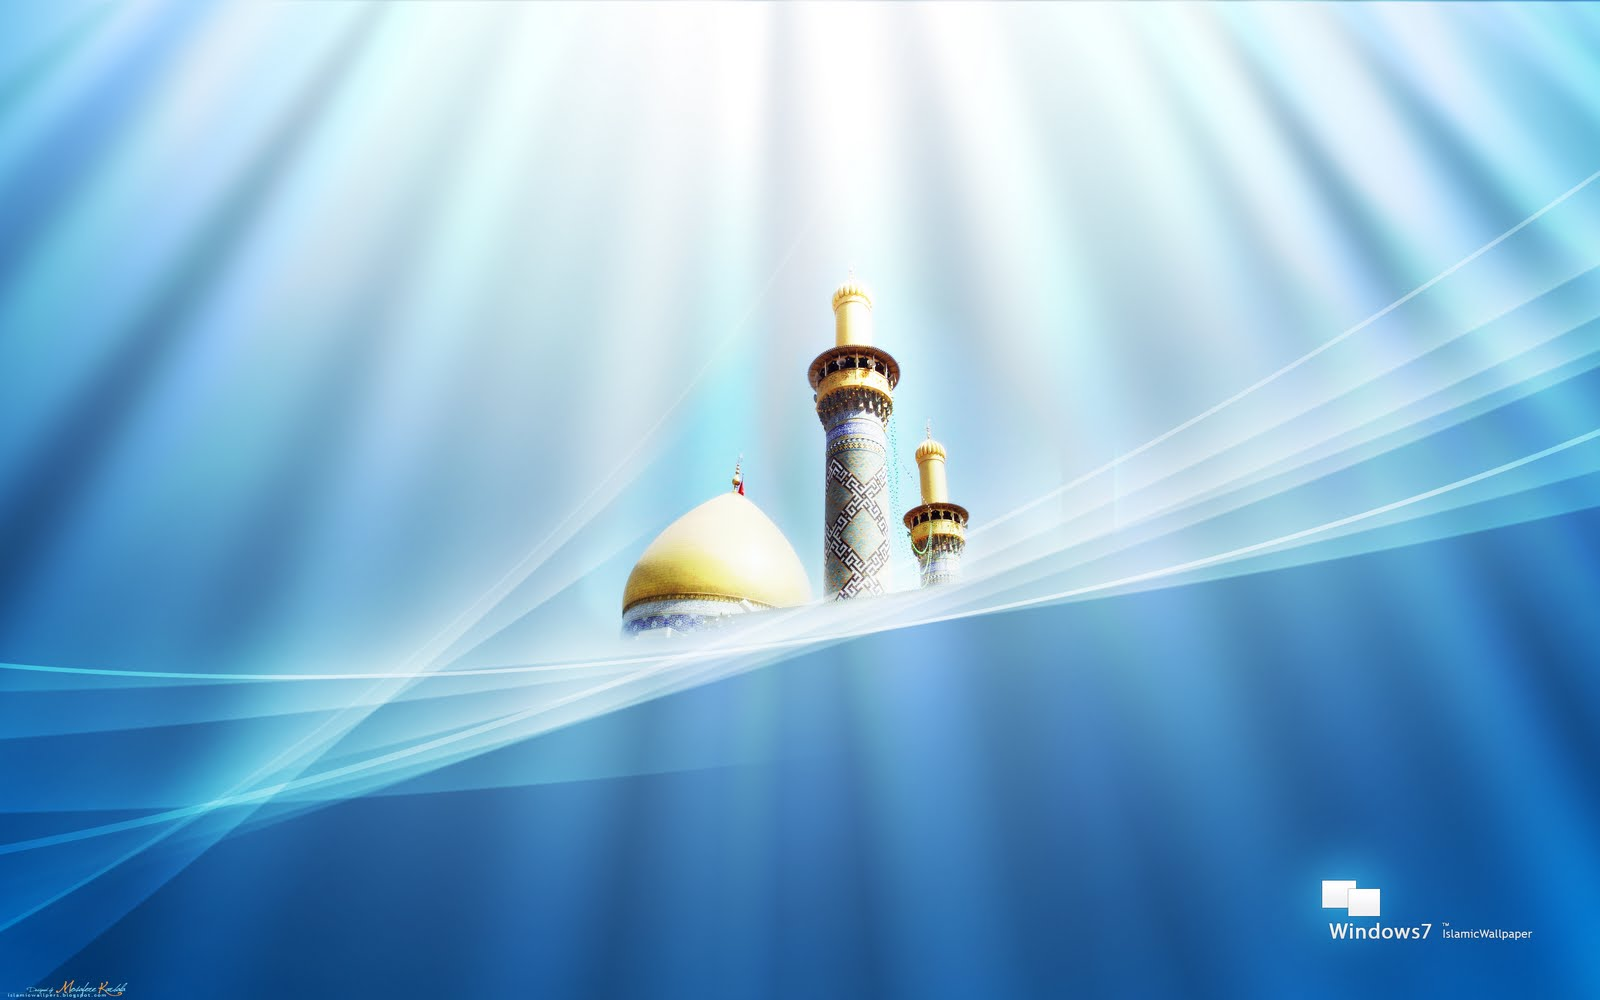 durood_sharif_wallpaper